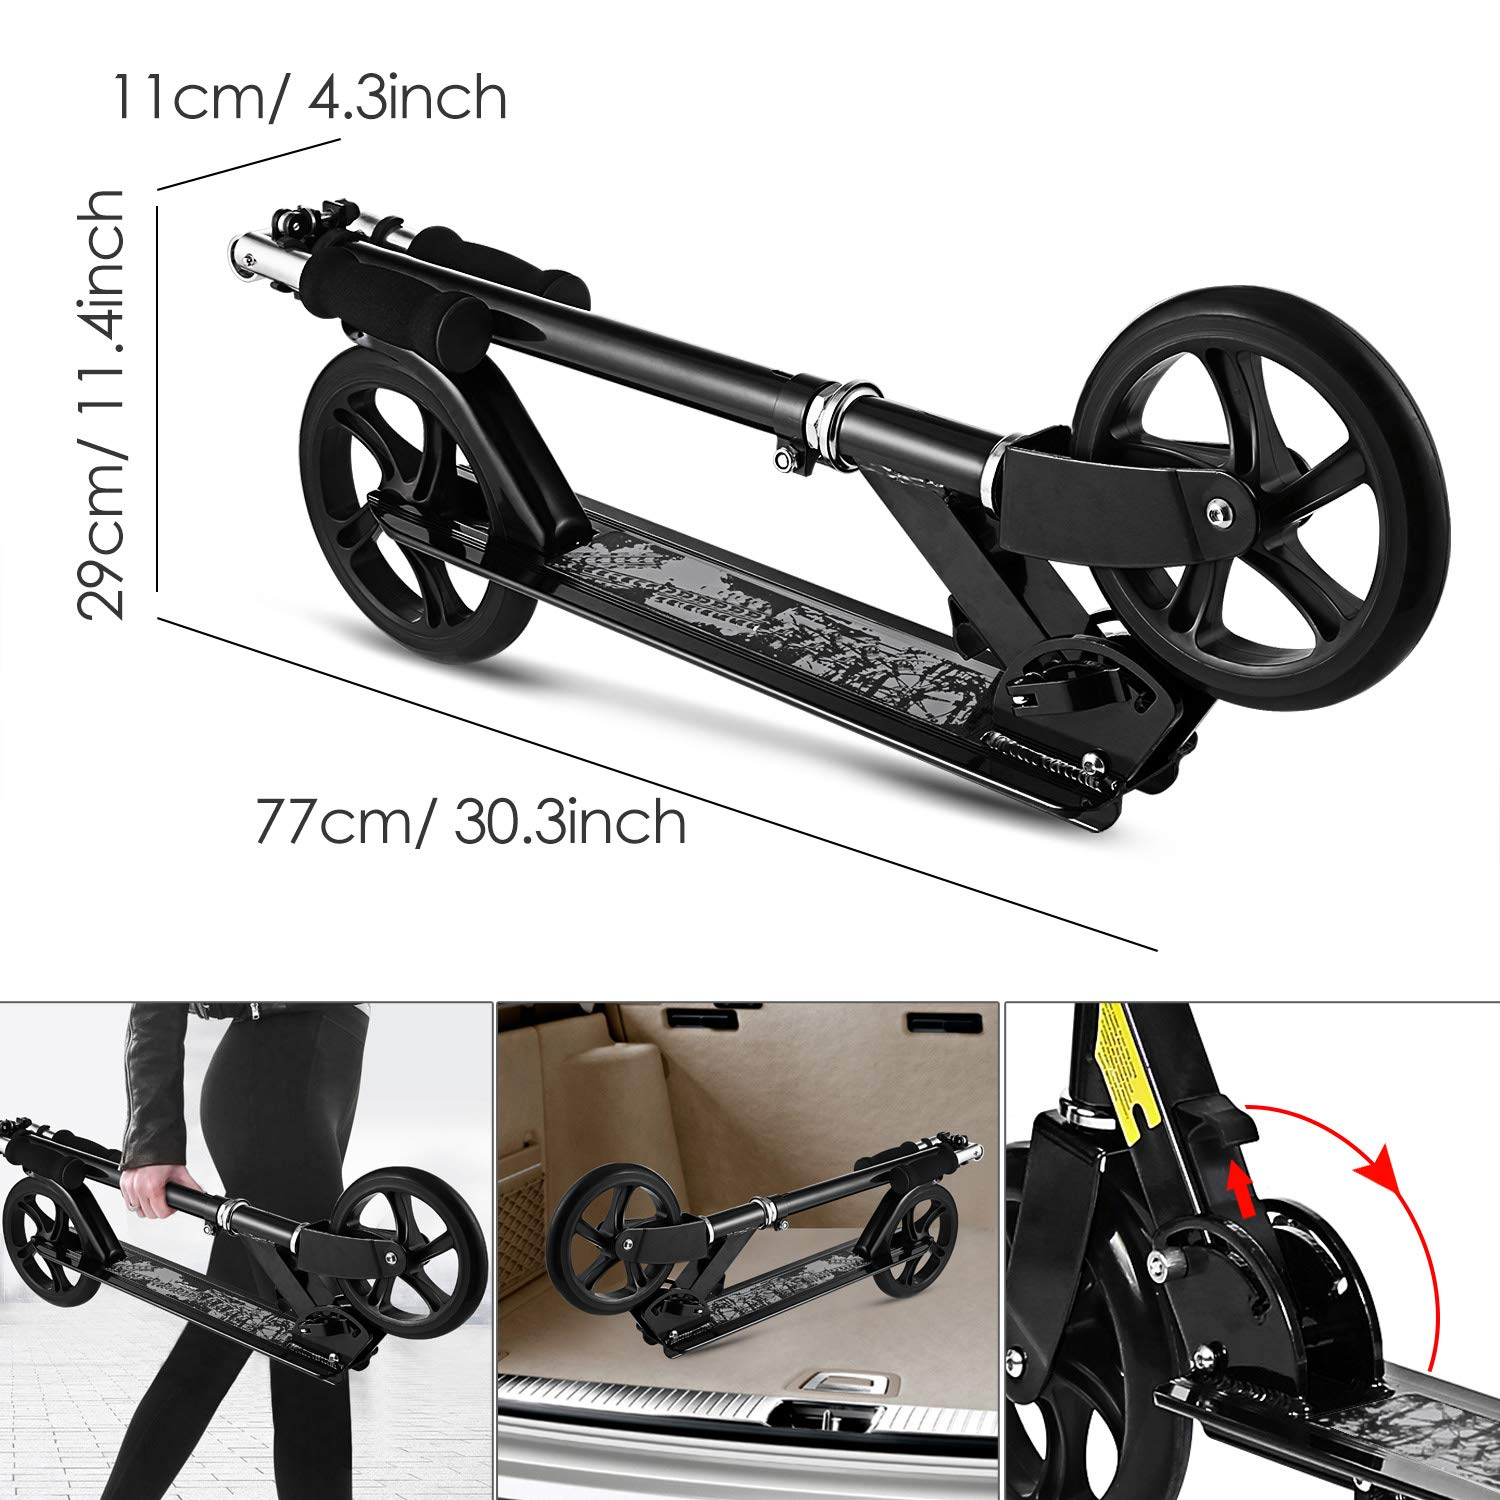 Hikole Scooter for Adult Youth Kids - Foldable Adjustable Portable Ultra-Lightweight   Teen Kick Scooter with Shoulder Strap, Birthday Gifts for Kids 8 Years Old and Up   Support 220 lbs by Hikole (Image #4)